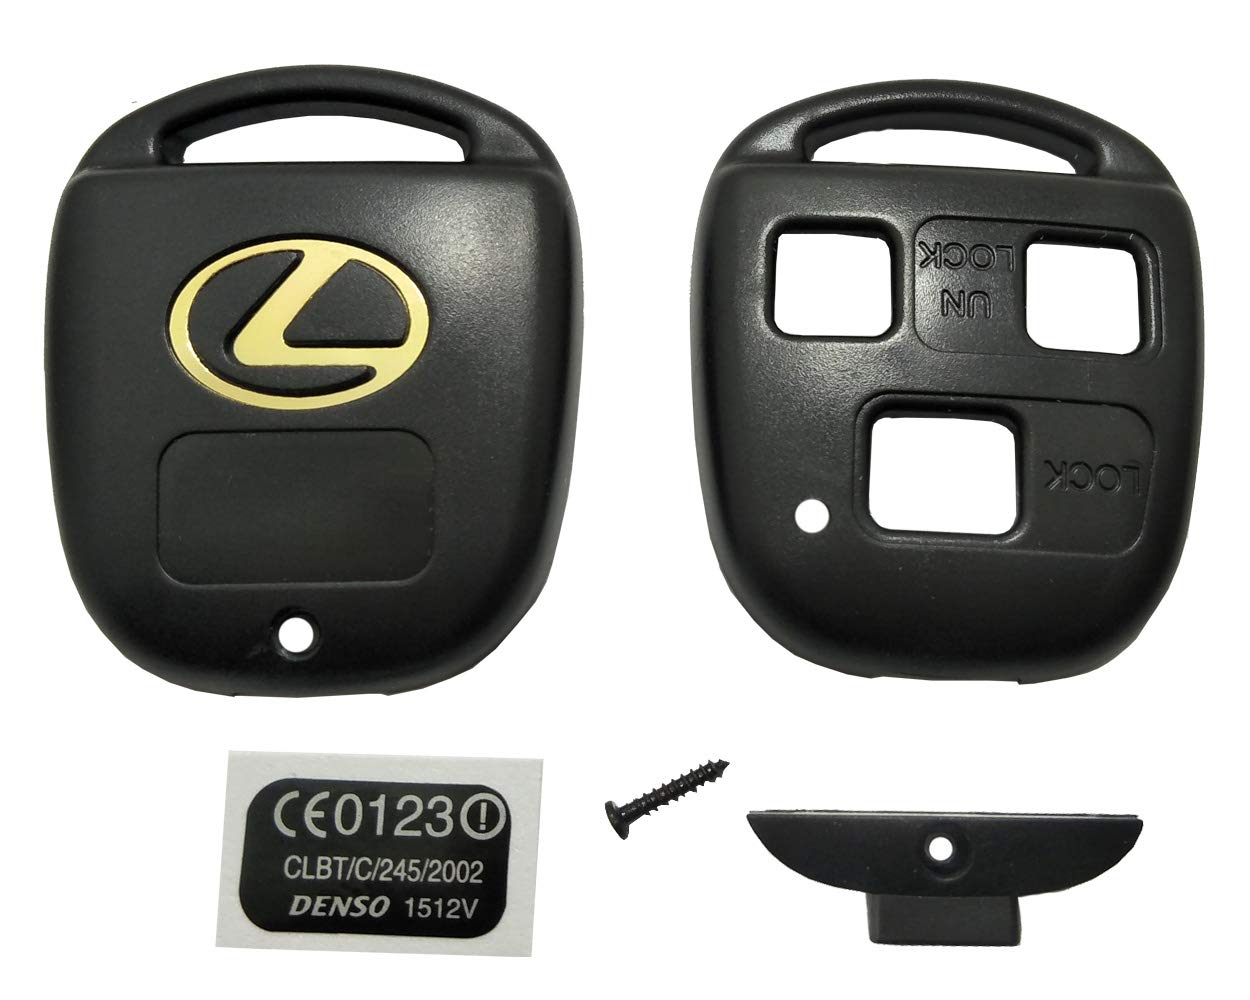 Horande Keyless Entry Remote Control Key Replacement Key Fob Case Shell Fit For Lexus ES GS GX IS LS LX RX SC Key Fob Cover Case Black